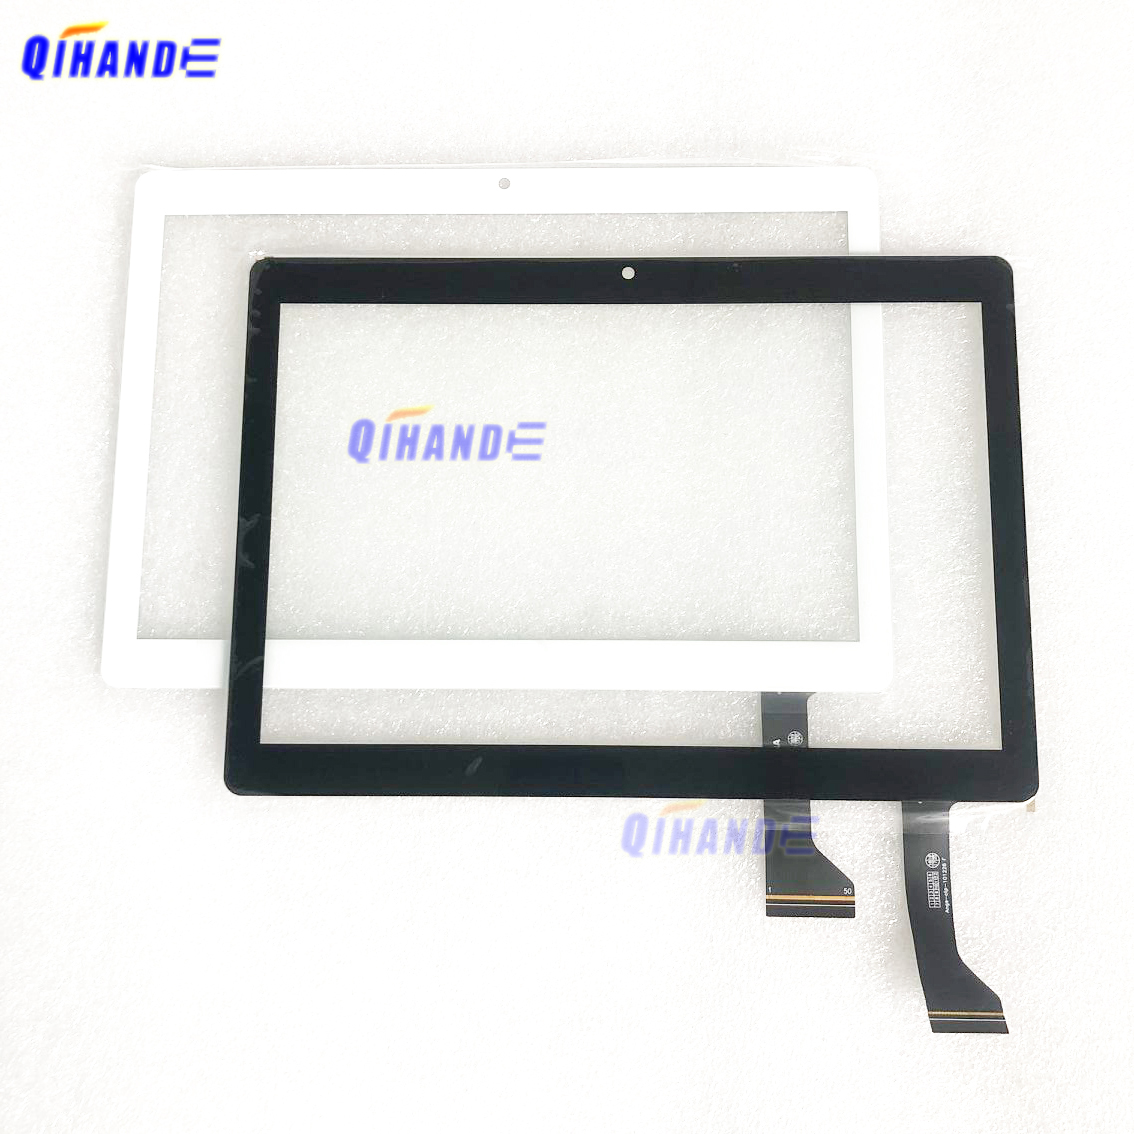 New Touchscreen For 10.1'' Inch Angs-ctp-101226 Smart Kids Tablet Touch Panel Digitizer Glass TouchSensor Code Angs -ctp -101226